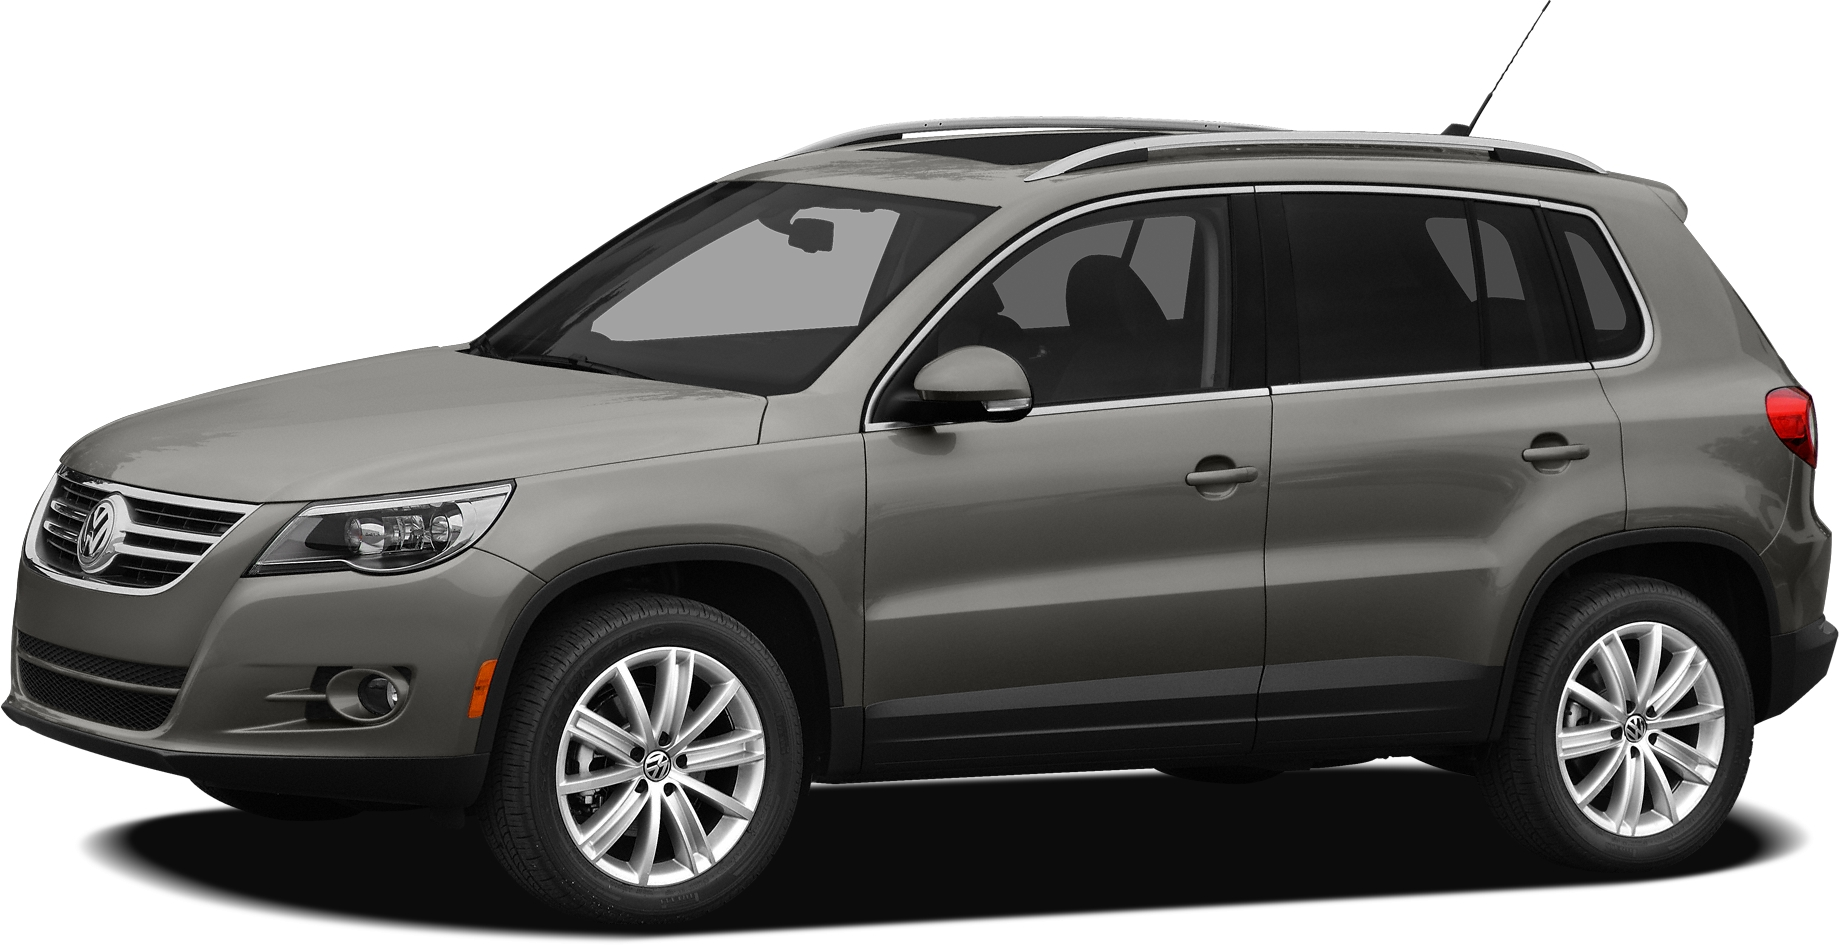 Isagenix International: Save up to 33%! Please Read All Info Below Before Using this Code. to Buy Isagenix Wholesale You Need to Sign Up as an Associate or Preferred Customer. to do that You Need to be Referred by Someone. Above is My Associate Code.